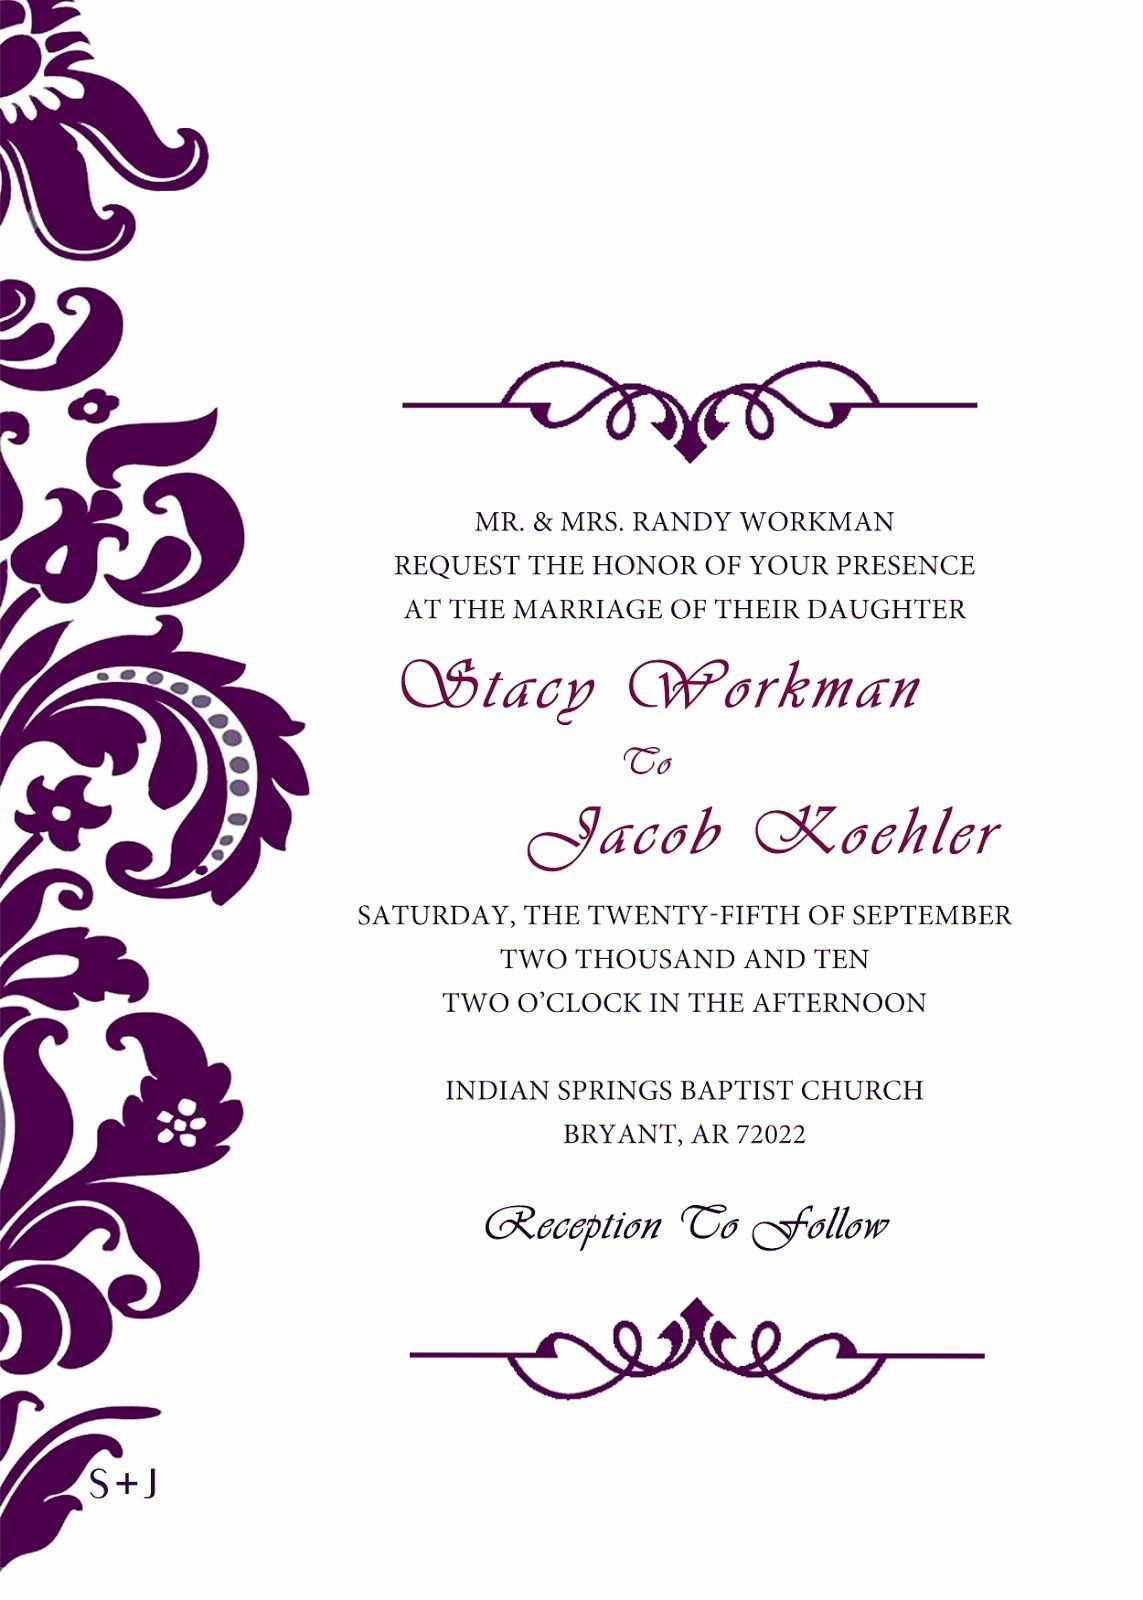 Formal Invitation Template Free Awesome Blank Wedding